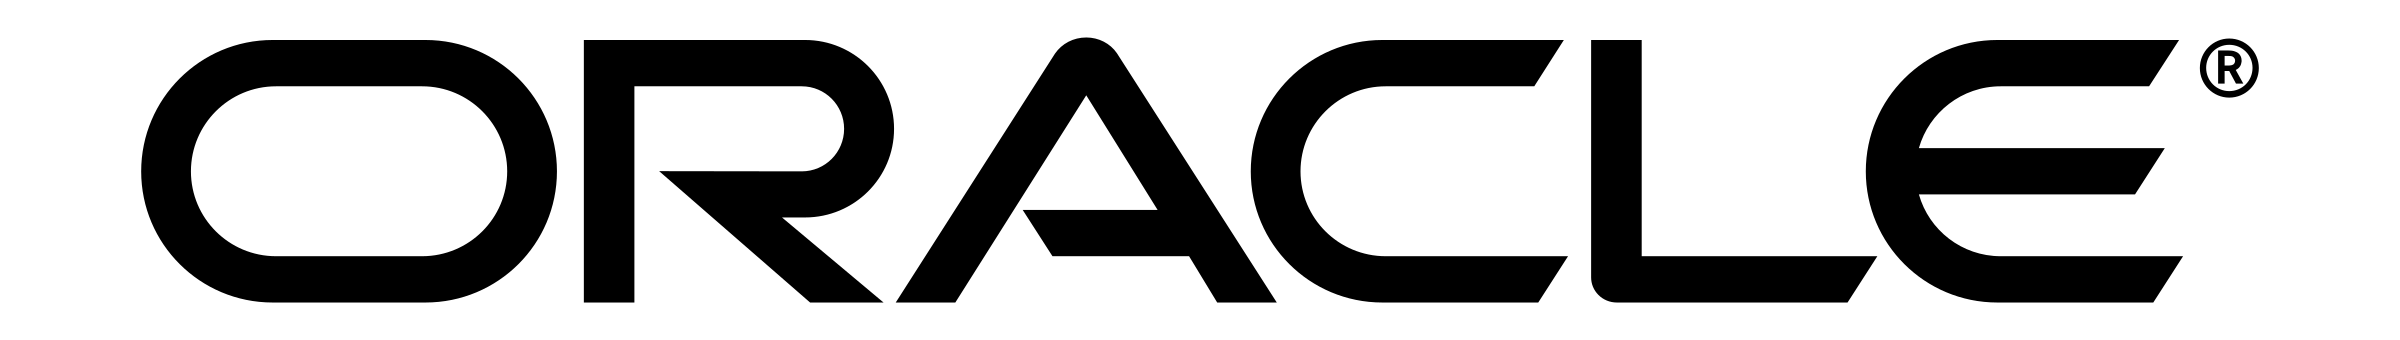 oracle-logo-black-transparent.png